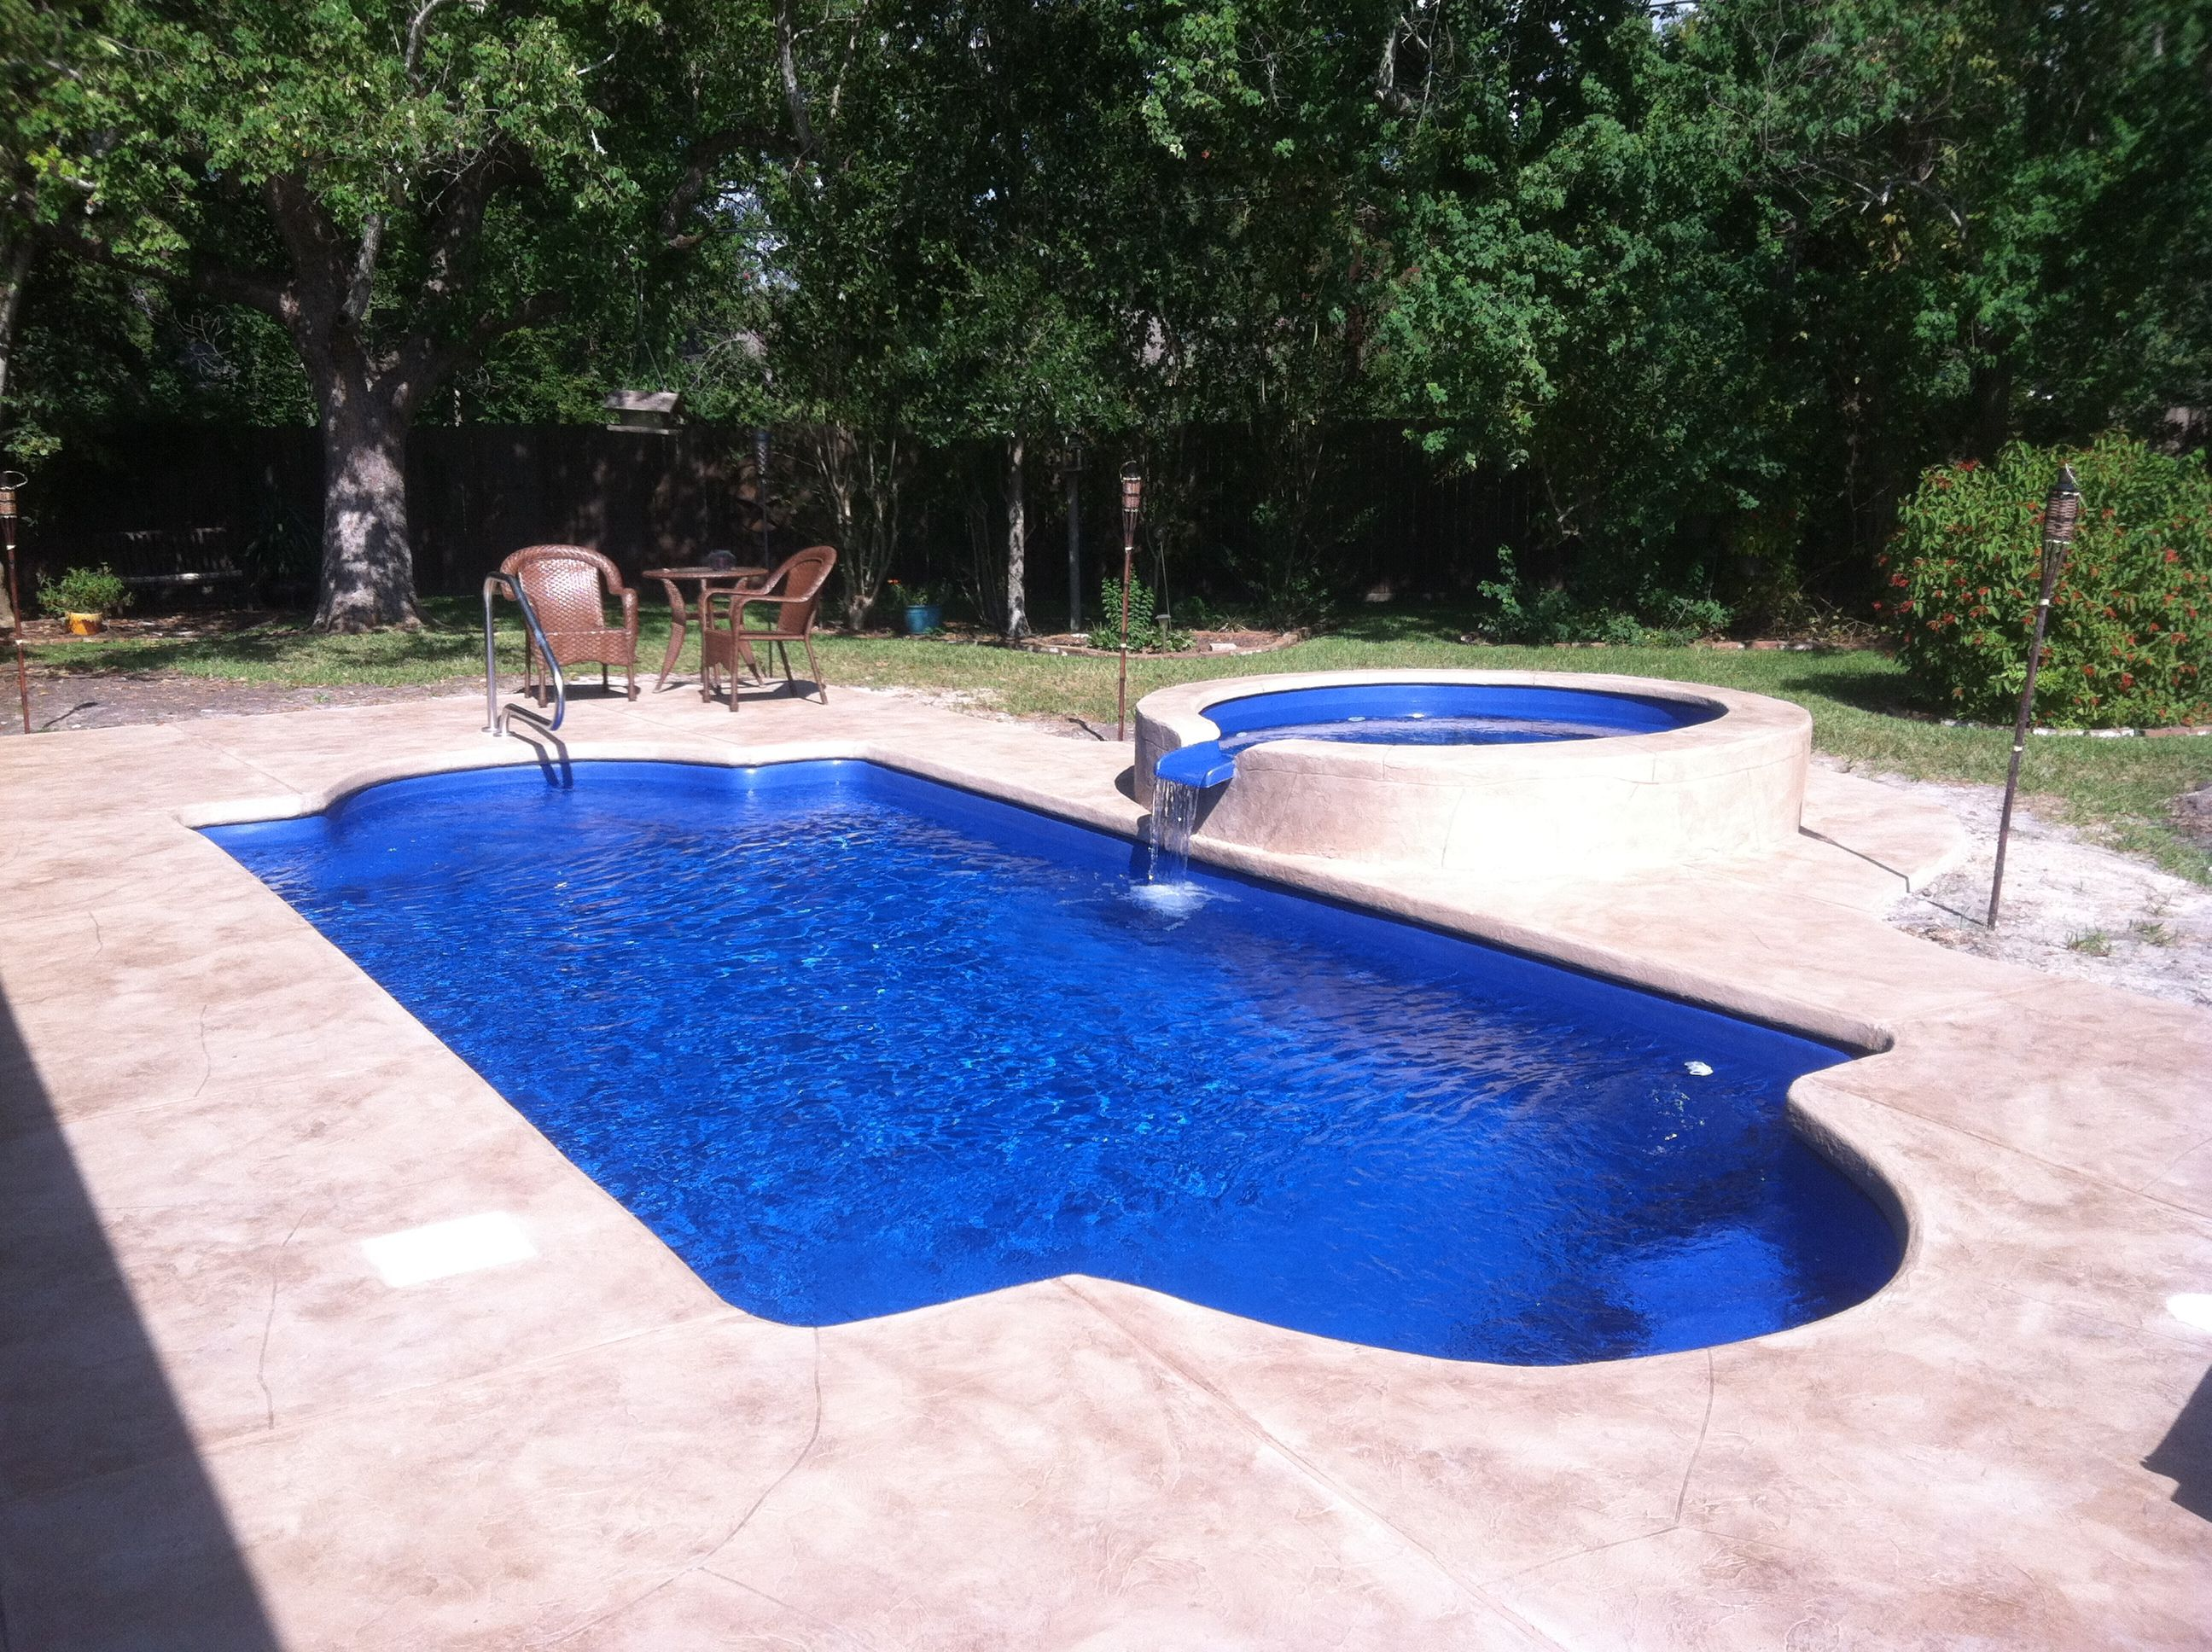 stamped concrete | Pool | Pool house plans, Small pool ...